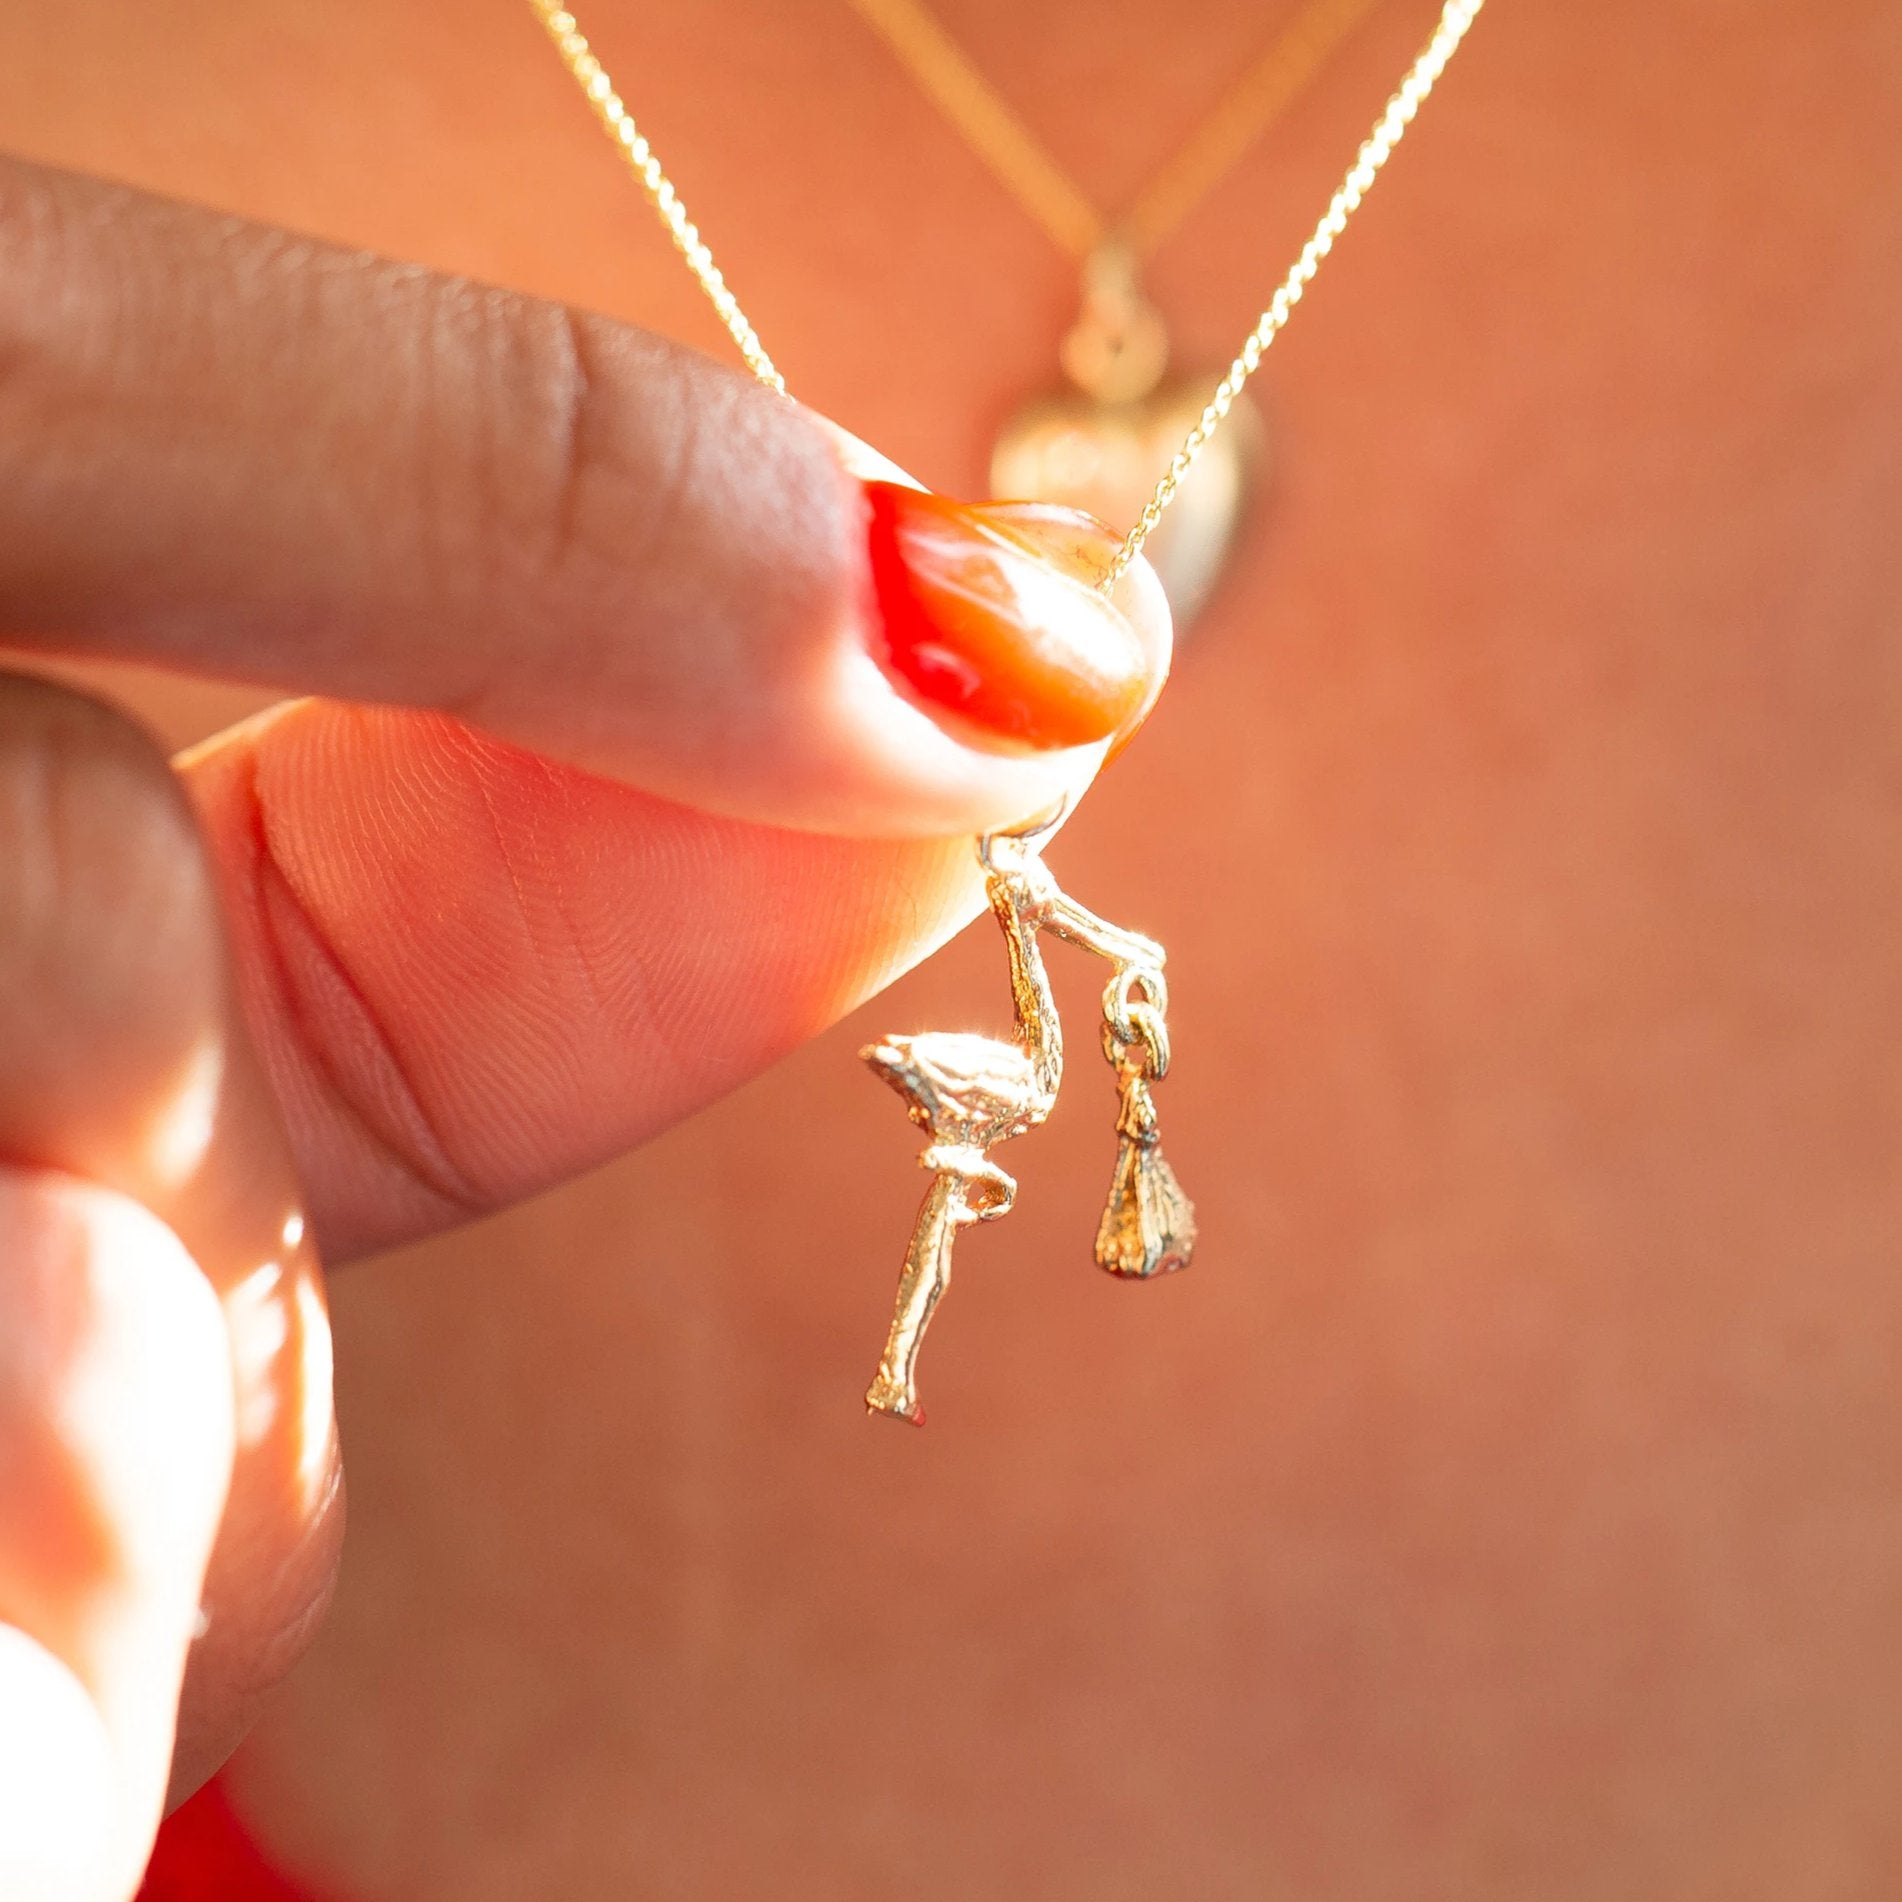 Movable Stork and Baby 14k Gold Charm